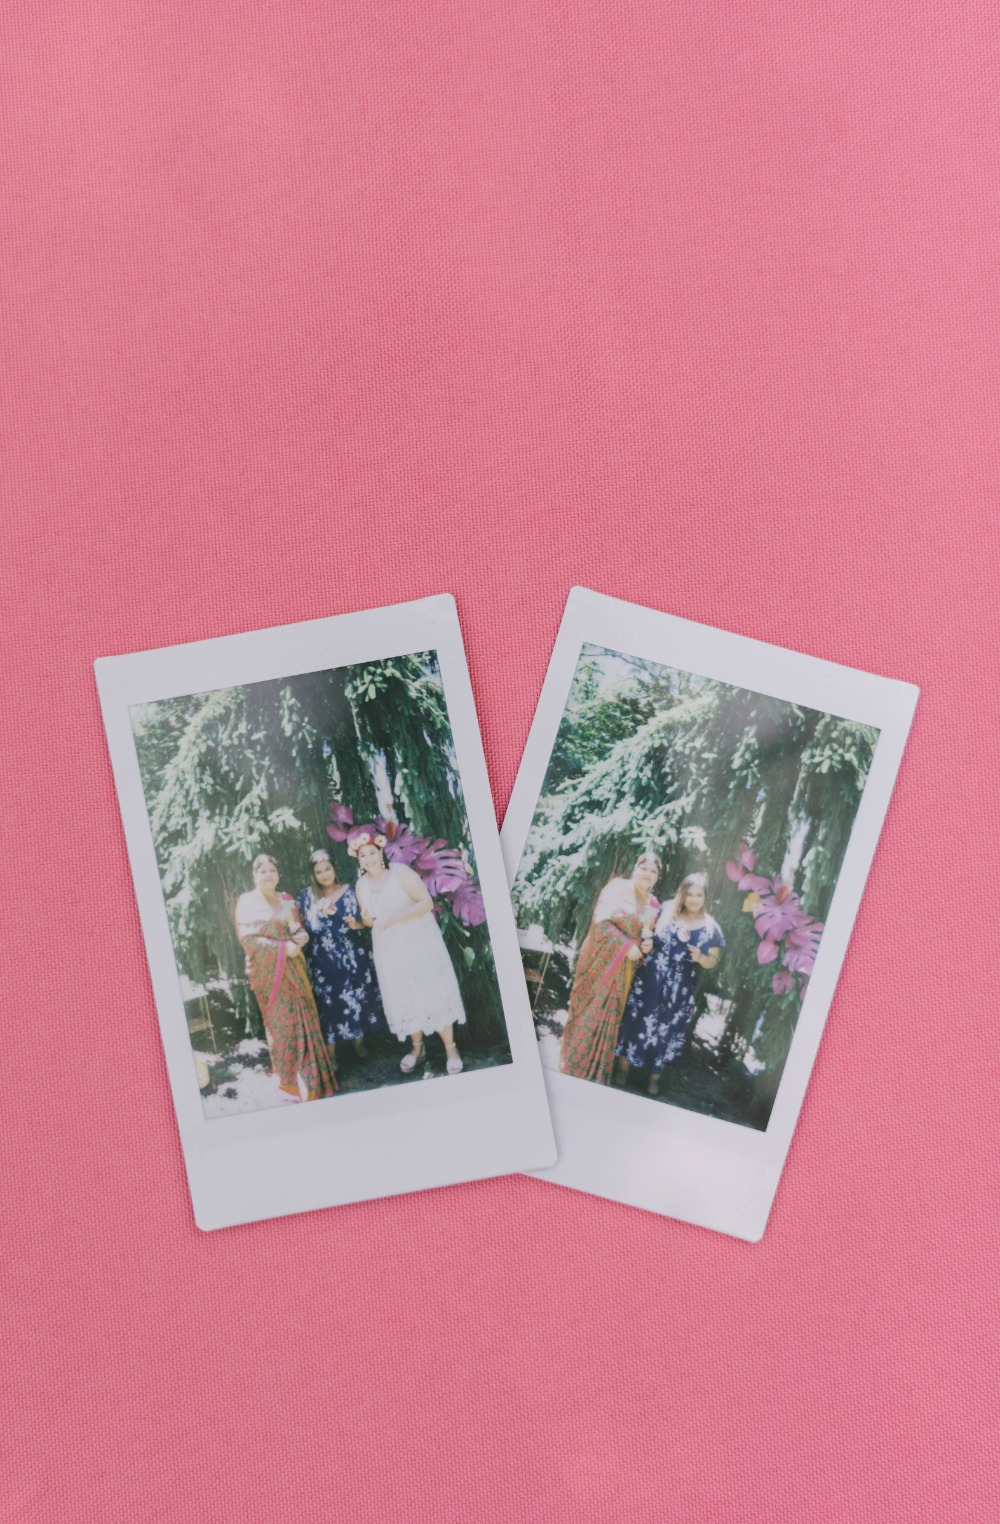 Instax photo station